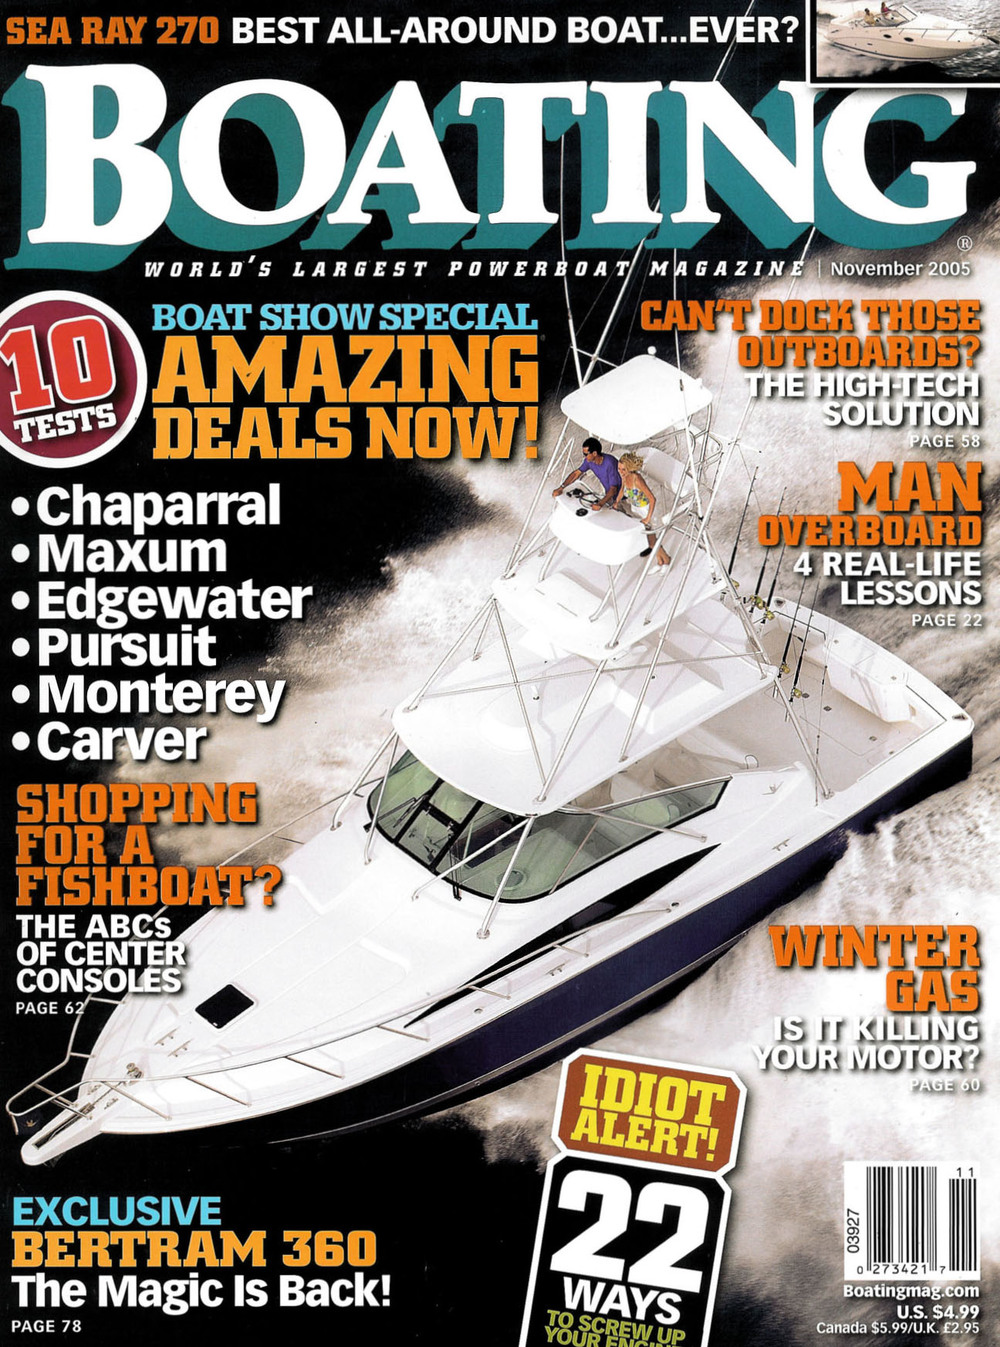 Boating Mag November 2005 cover.jpg